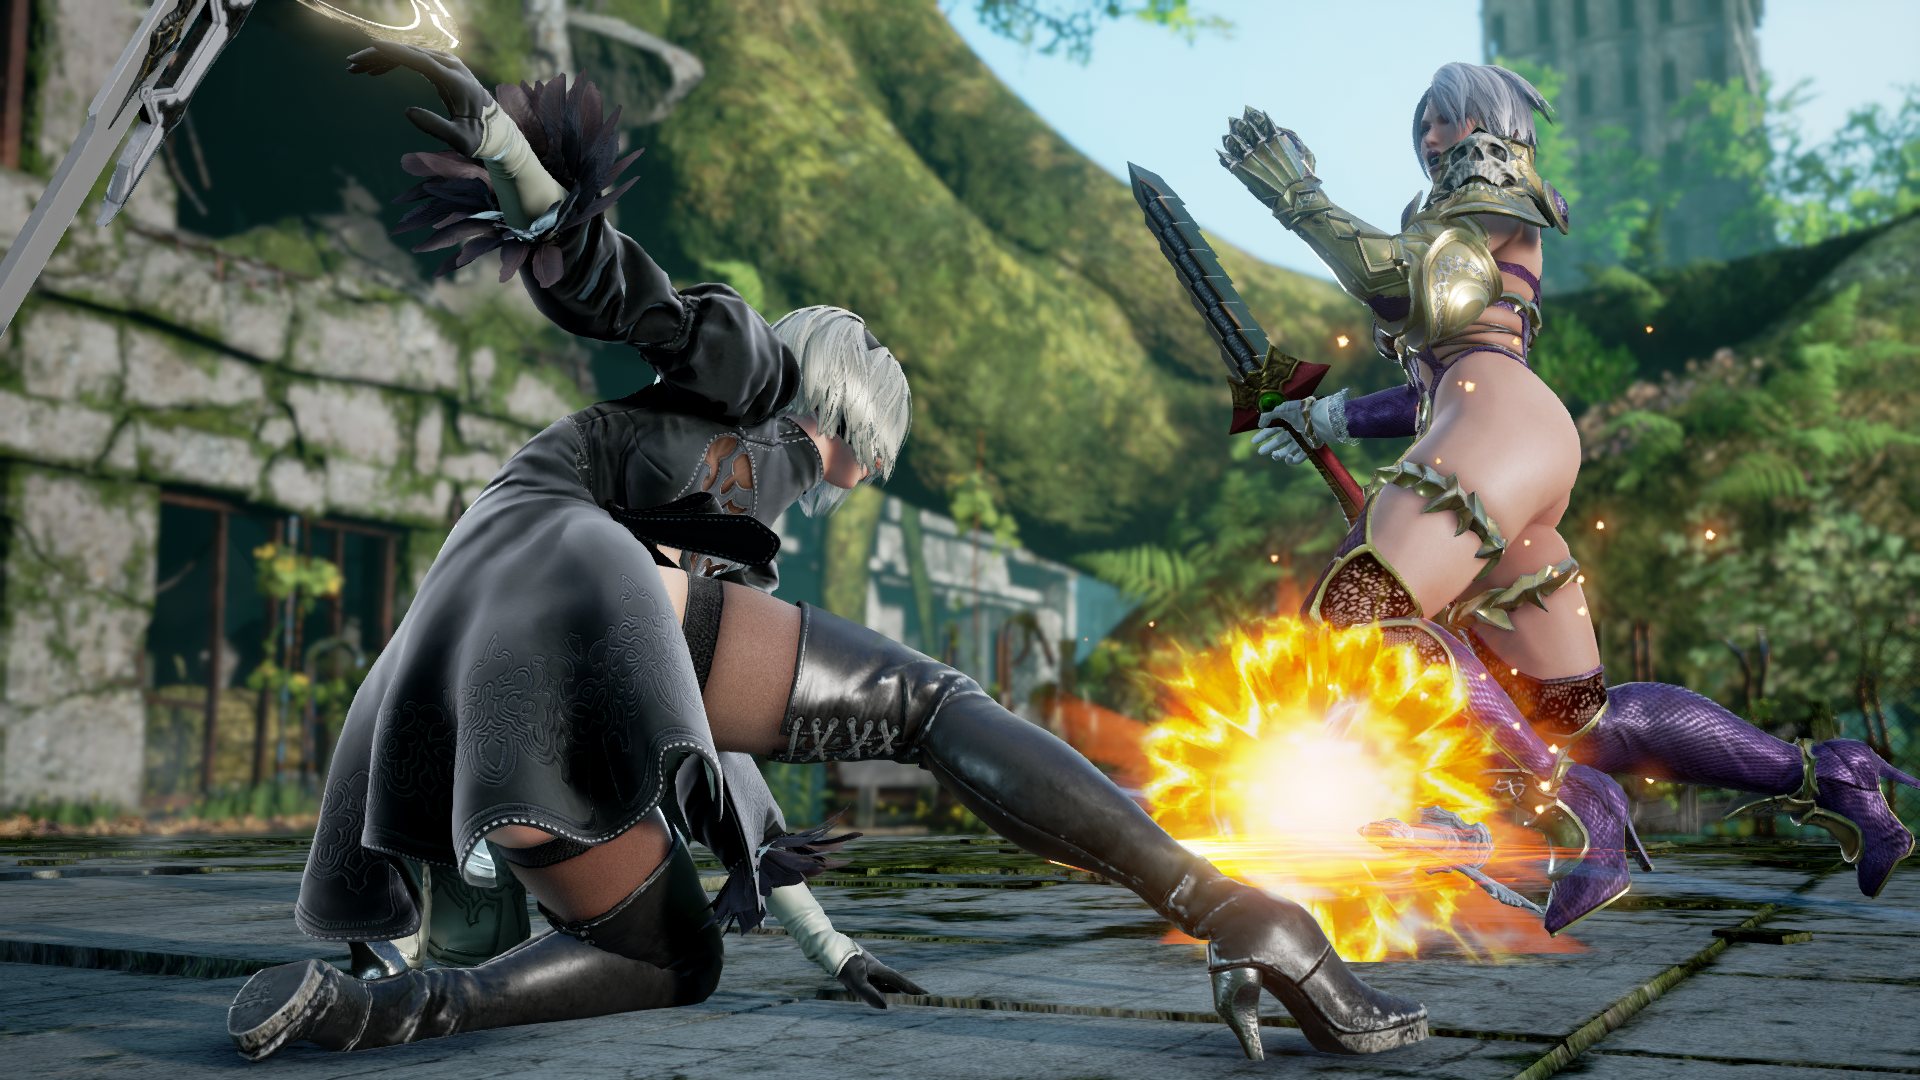 SOULCALIBUR VI - 2B vs Ivy in-game